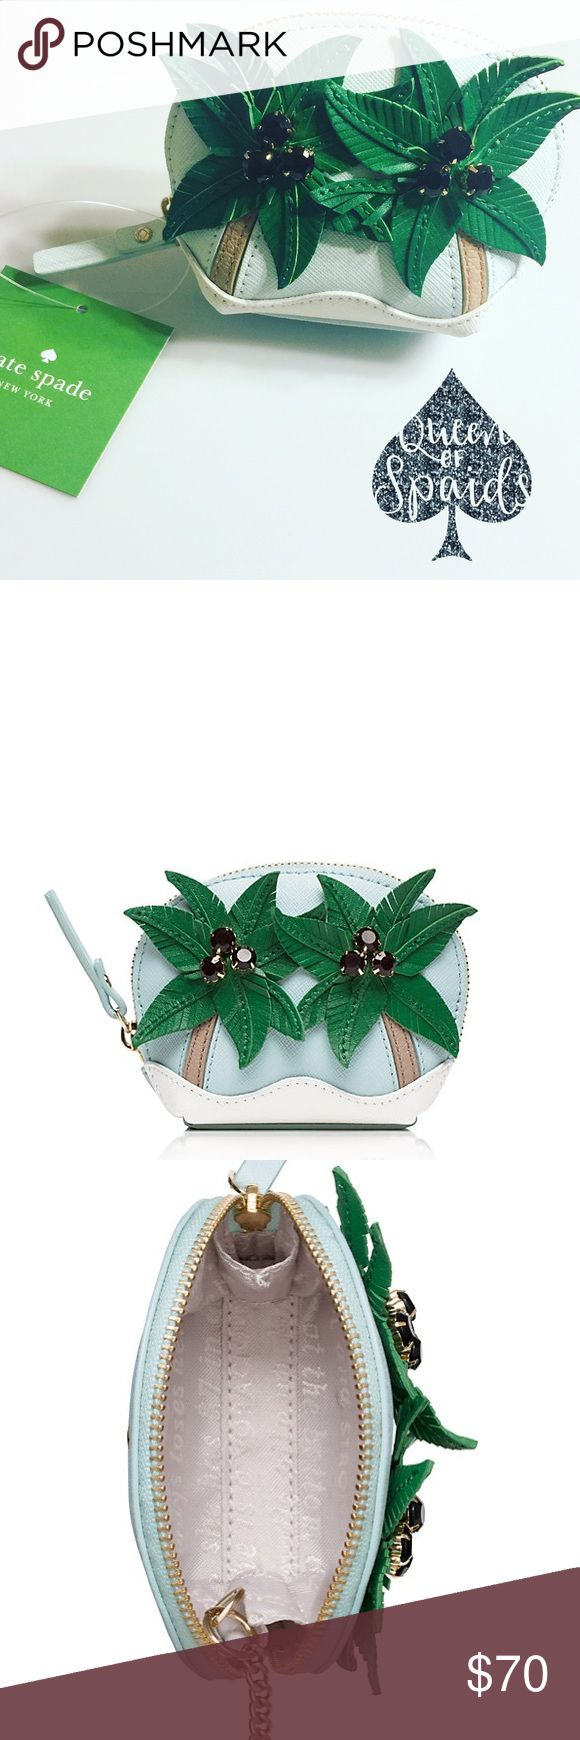 """Kate Spade Palm Tree Coin Purse Stash your spare change in this palm-covered coin purse, guaranteed to make you smile even if your next tropical vacation is ages away.   ♠️Genuine leather with matching trim ♠️14-karat light gold plated hardware ♠️Zip around closure ♠️Kate Spade New York Spade Stud ♠️3.4"""" h x 4.3"""" w x 1.6""""d  ♠️Reads: I need a vacation.  CLOSET RULES ♠️ No Trades ♠️ I do not conduct any transactions off Poshmark ♠️ If I receive an offer for more than 35% off, I will…"""